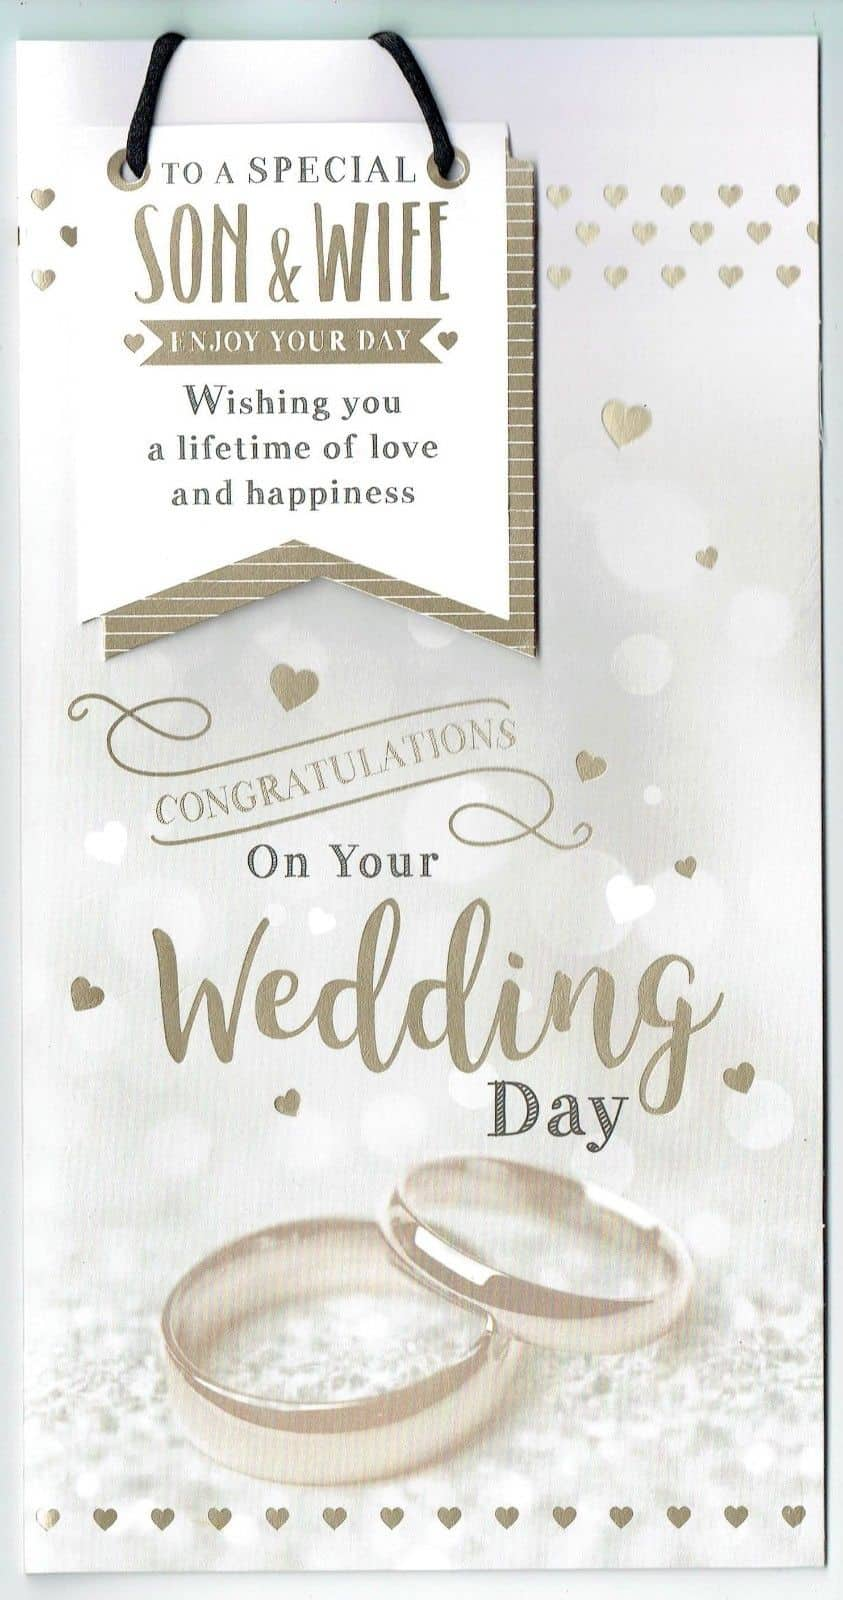 Congratulations On Your Wedding Day.Son And Wife Wedding Day Card Congratulations On Your Wedding Day